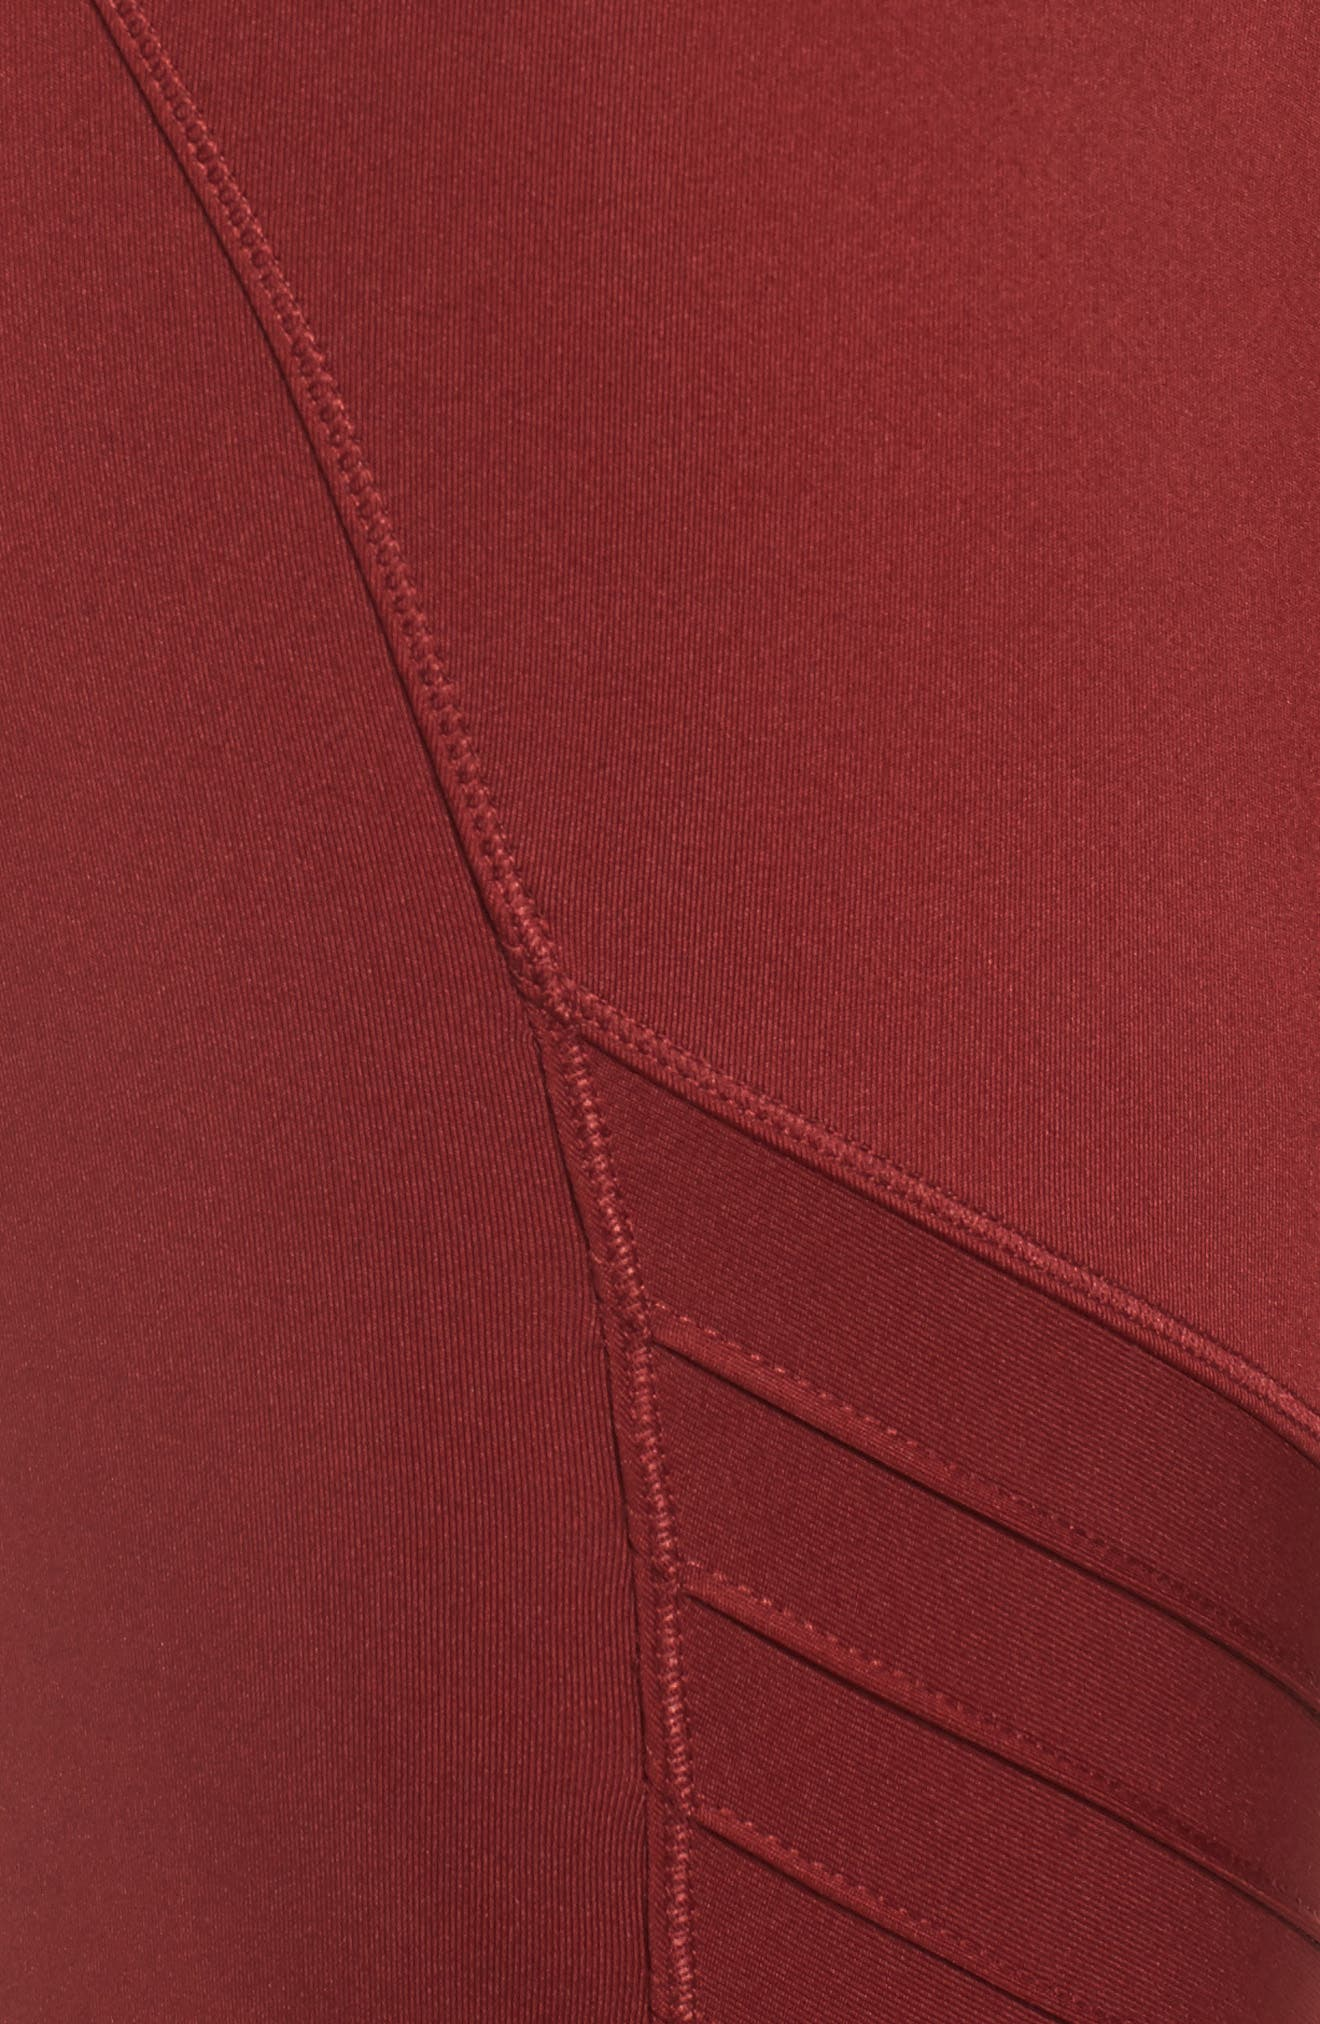 Pintuck Leggings,                             Alternate thumbnail 8, color,                             Russet